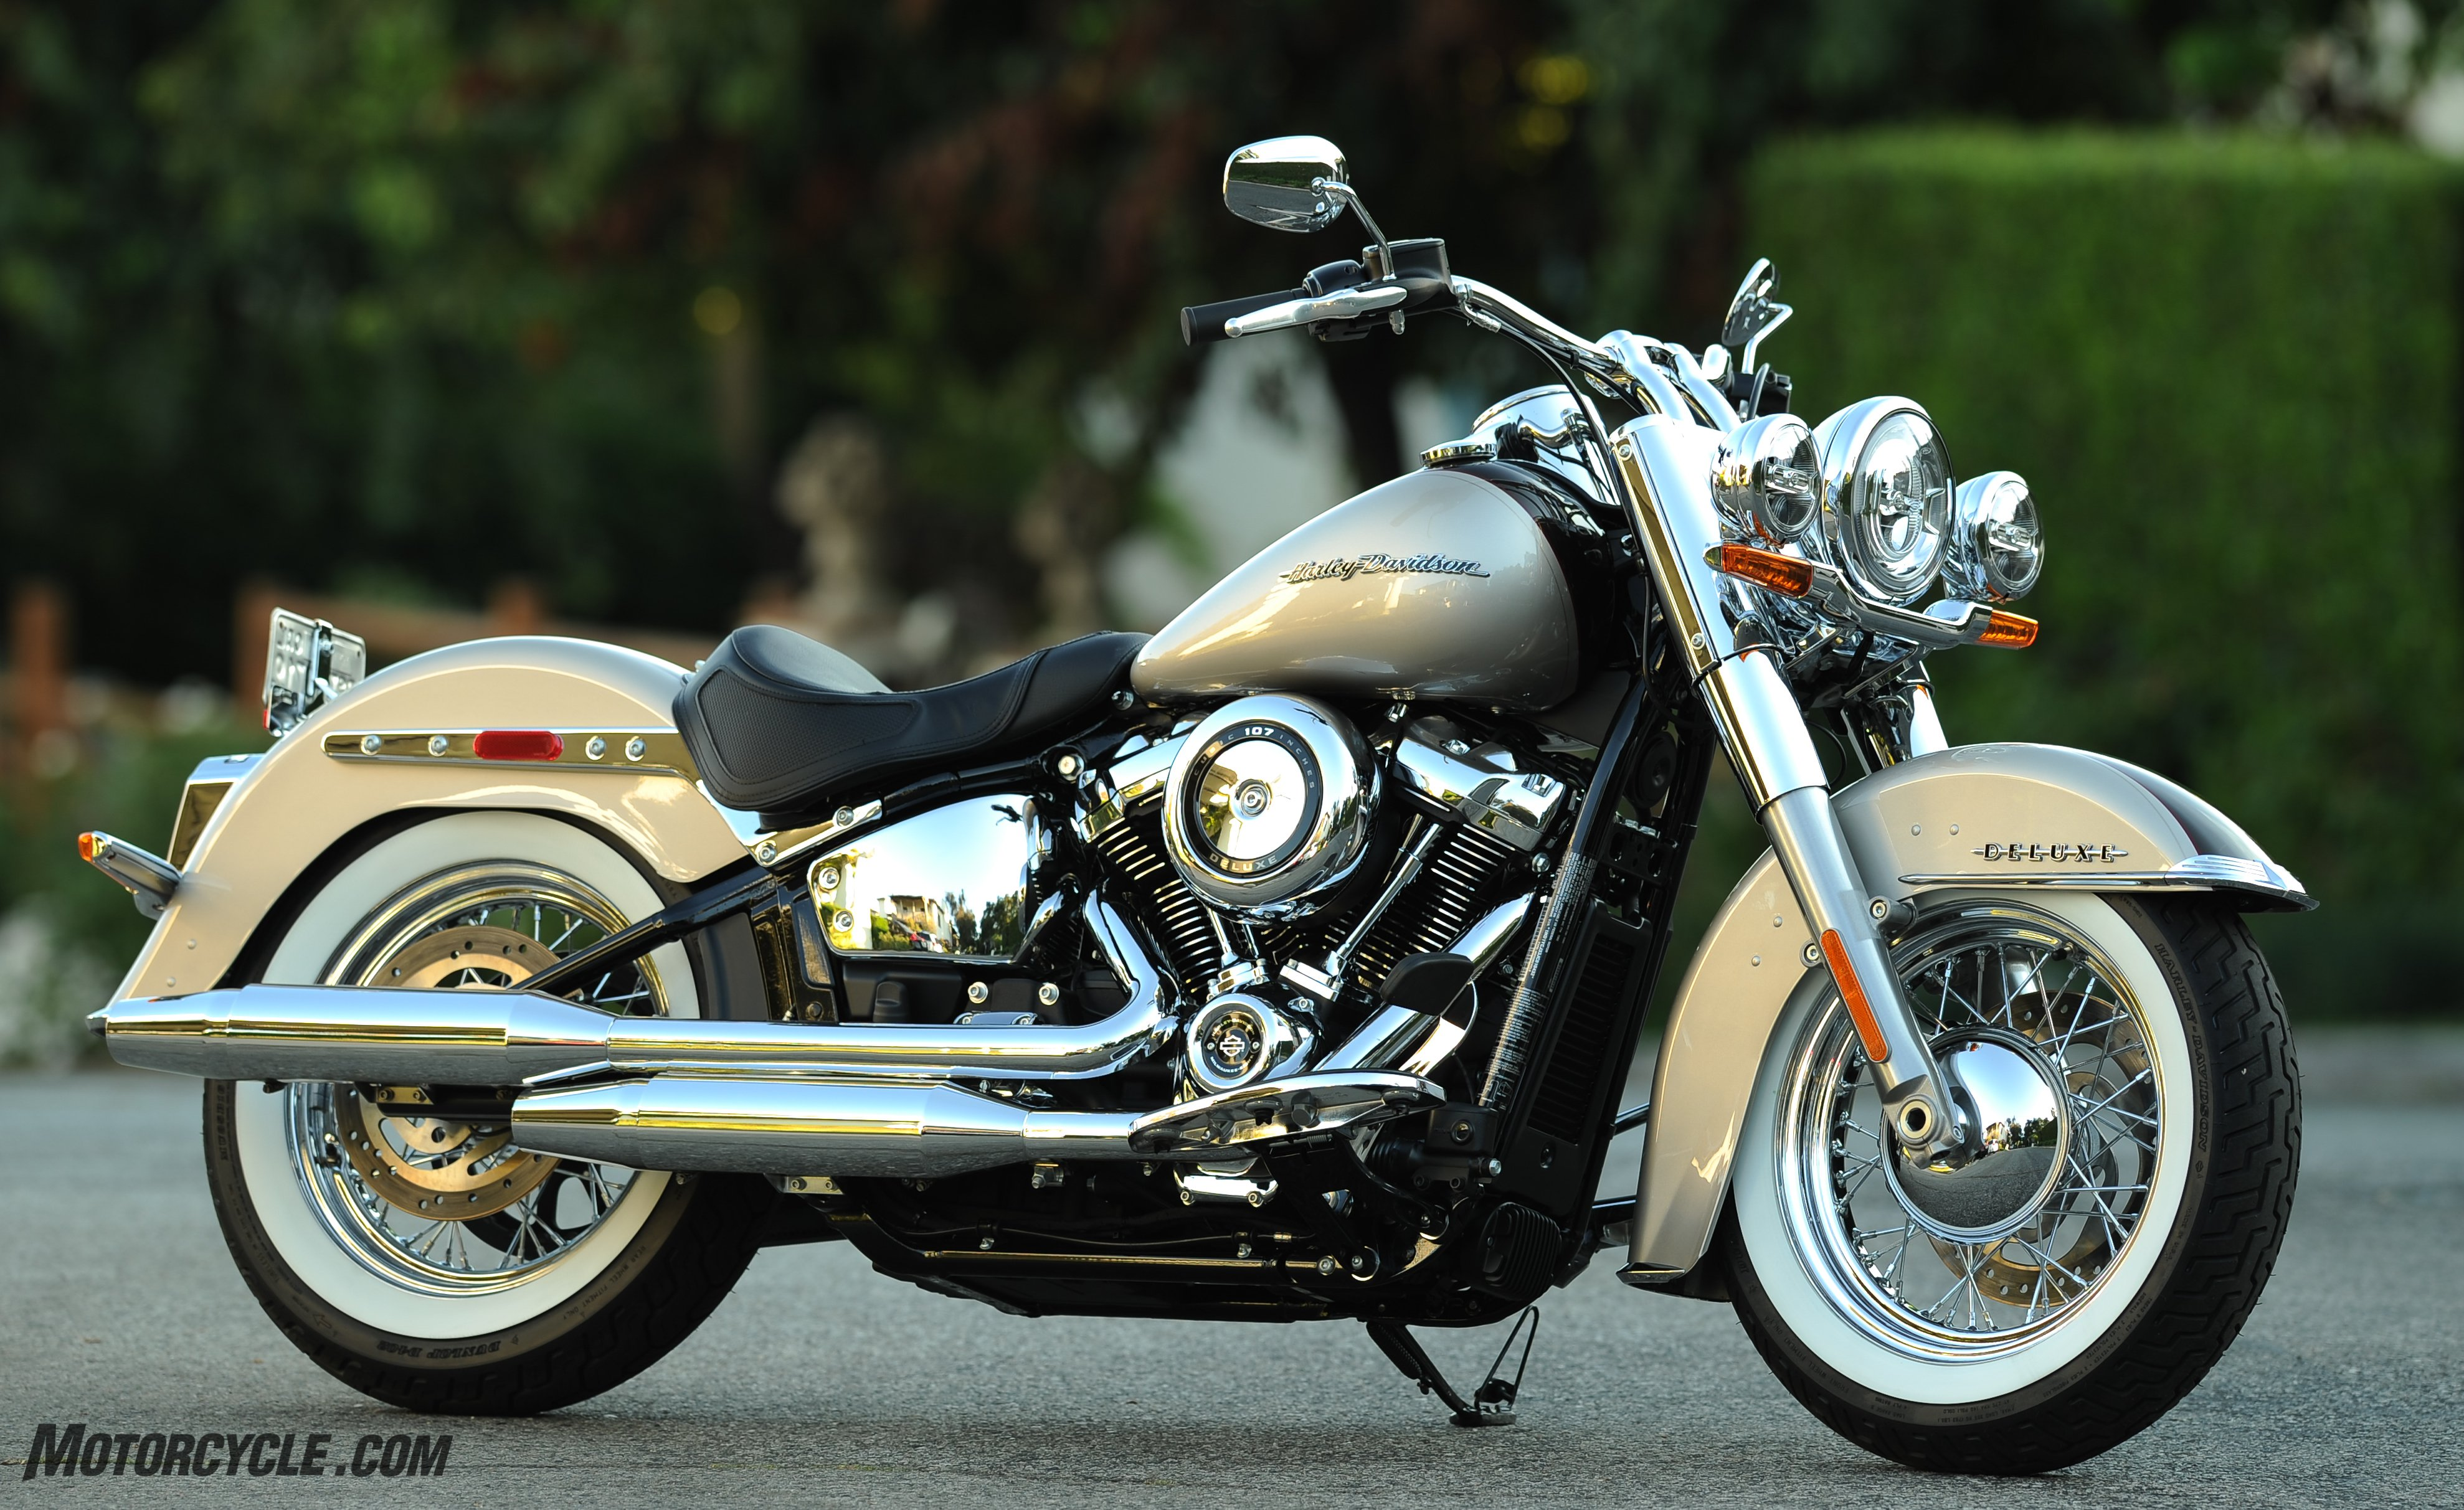 091817-Harley-Davidson-Deluxe-9892 - Motorcycle.com